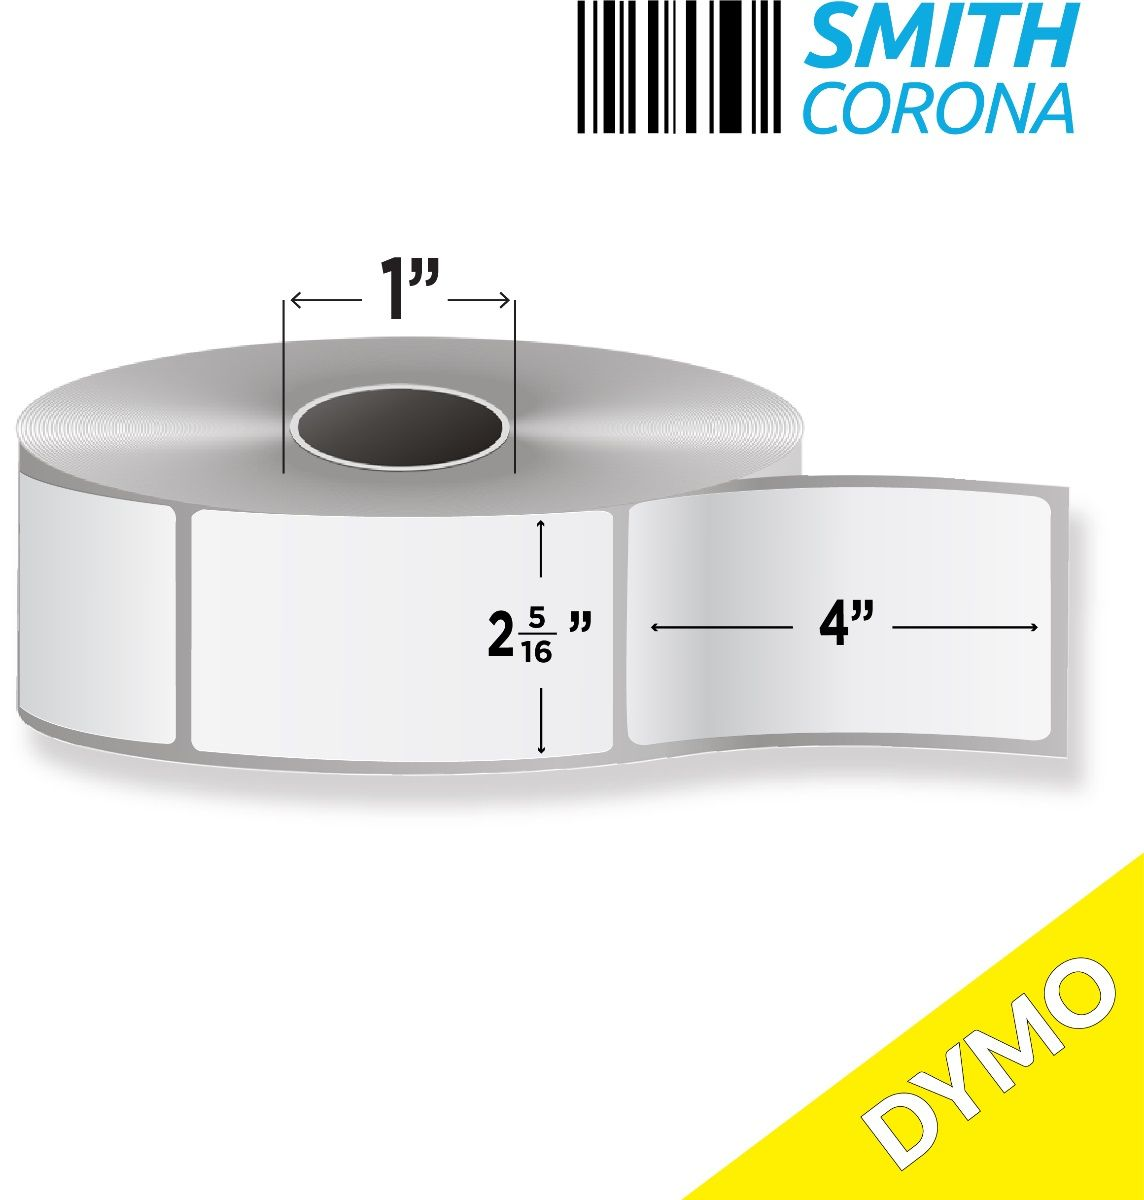 2 5/16 x 4 Dymo Labels